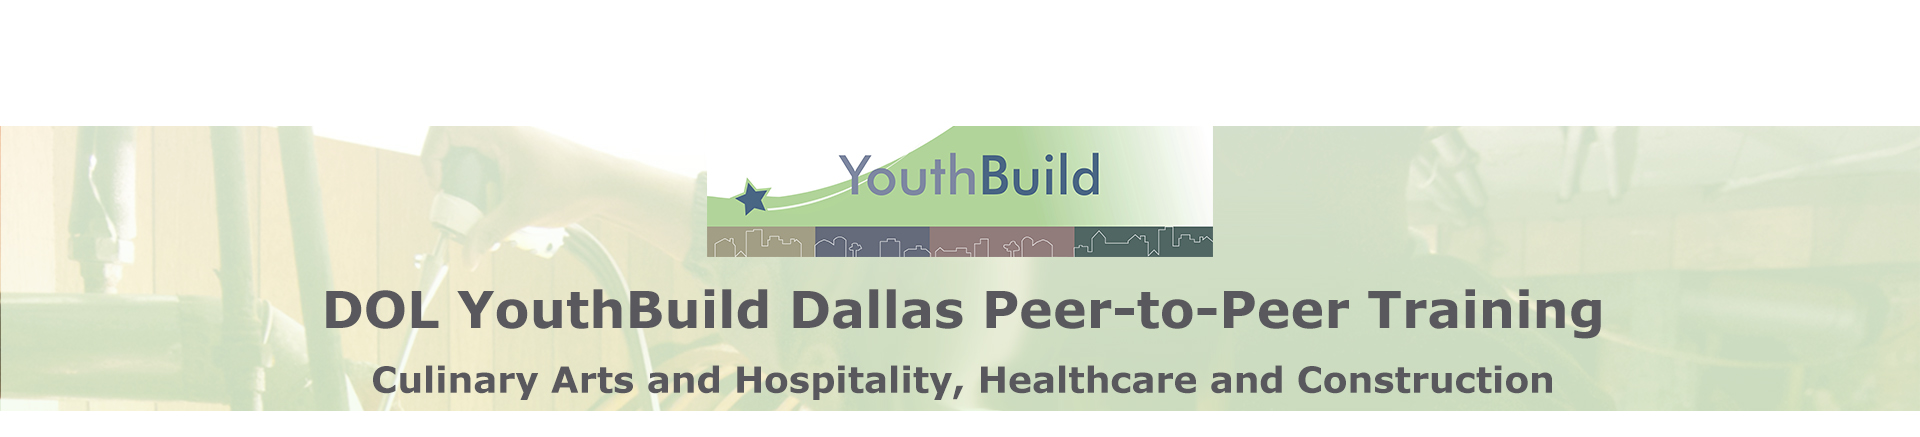 DOL YouthBuild Dallas Peer-to-Peer Training